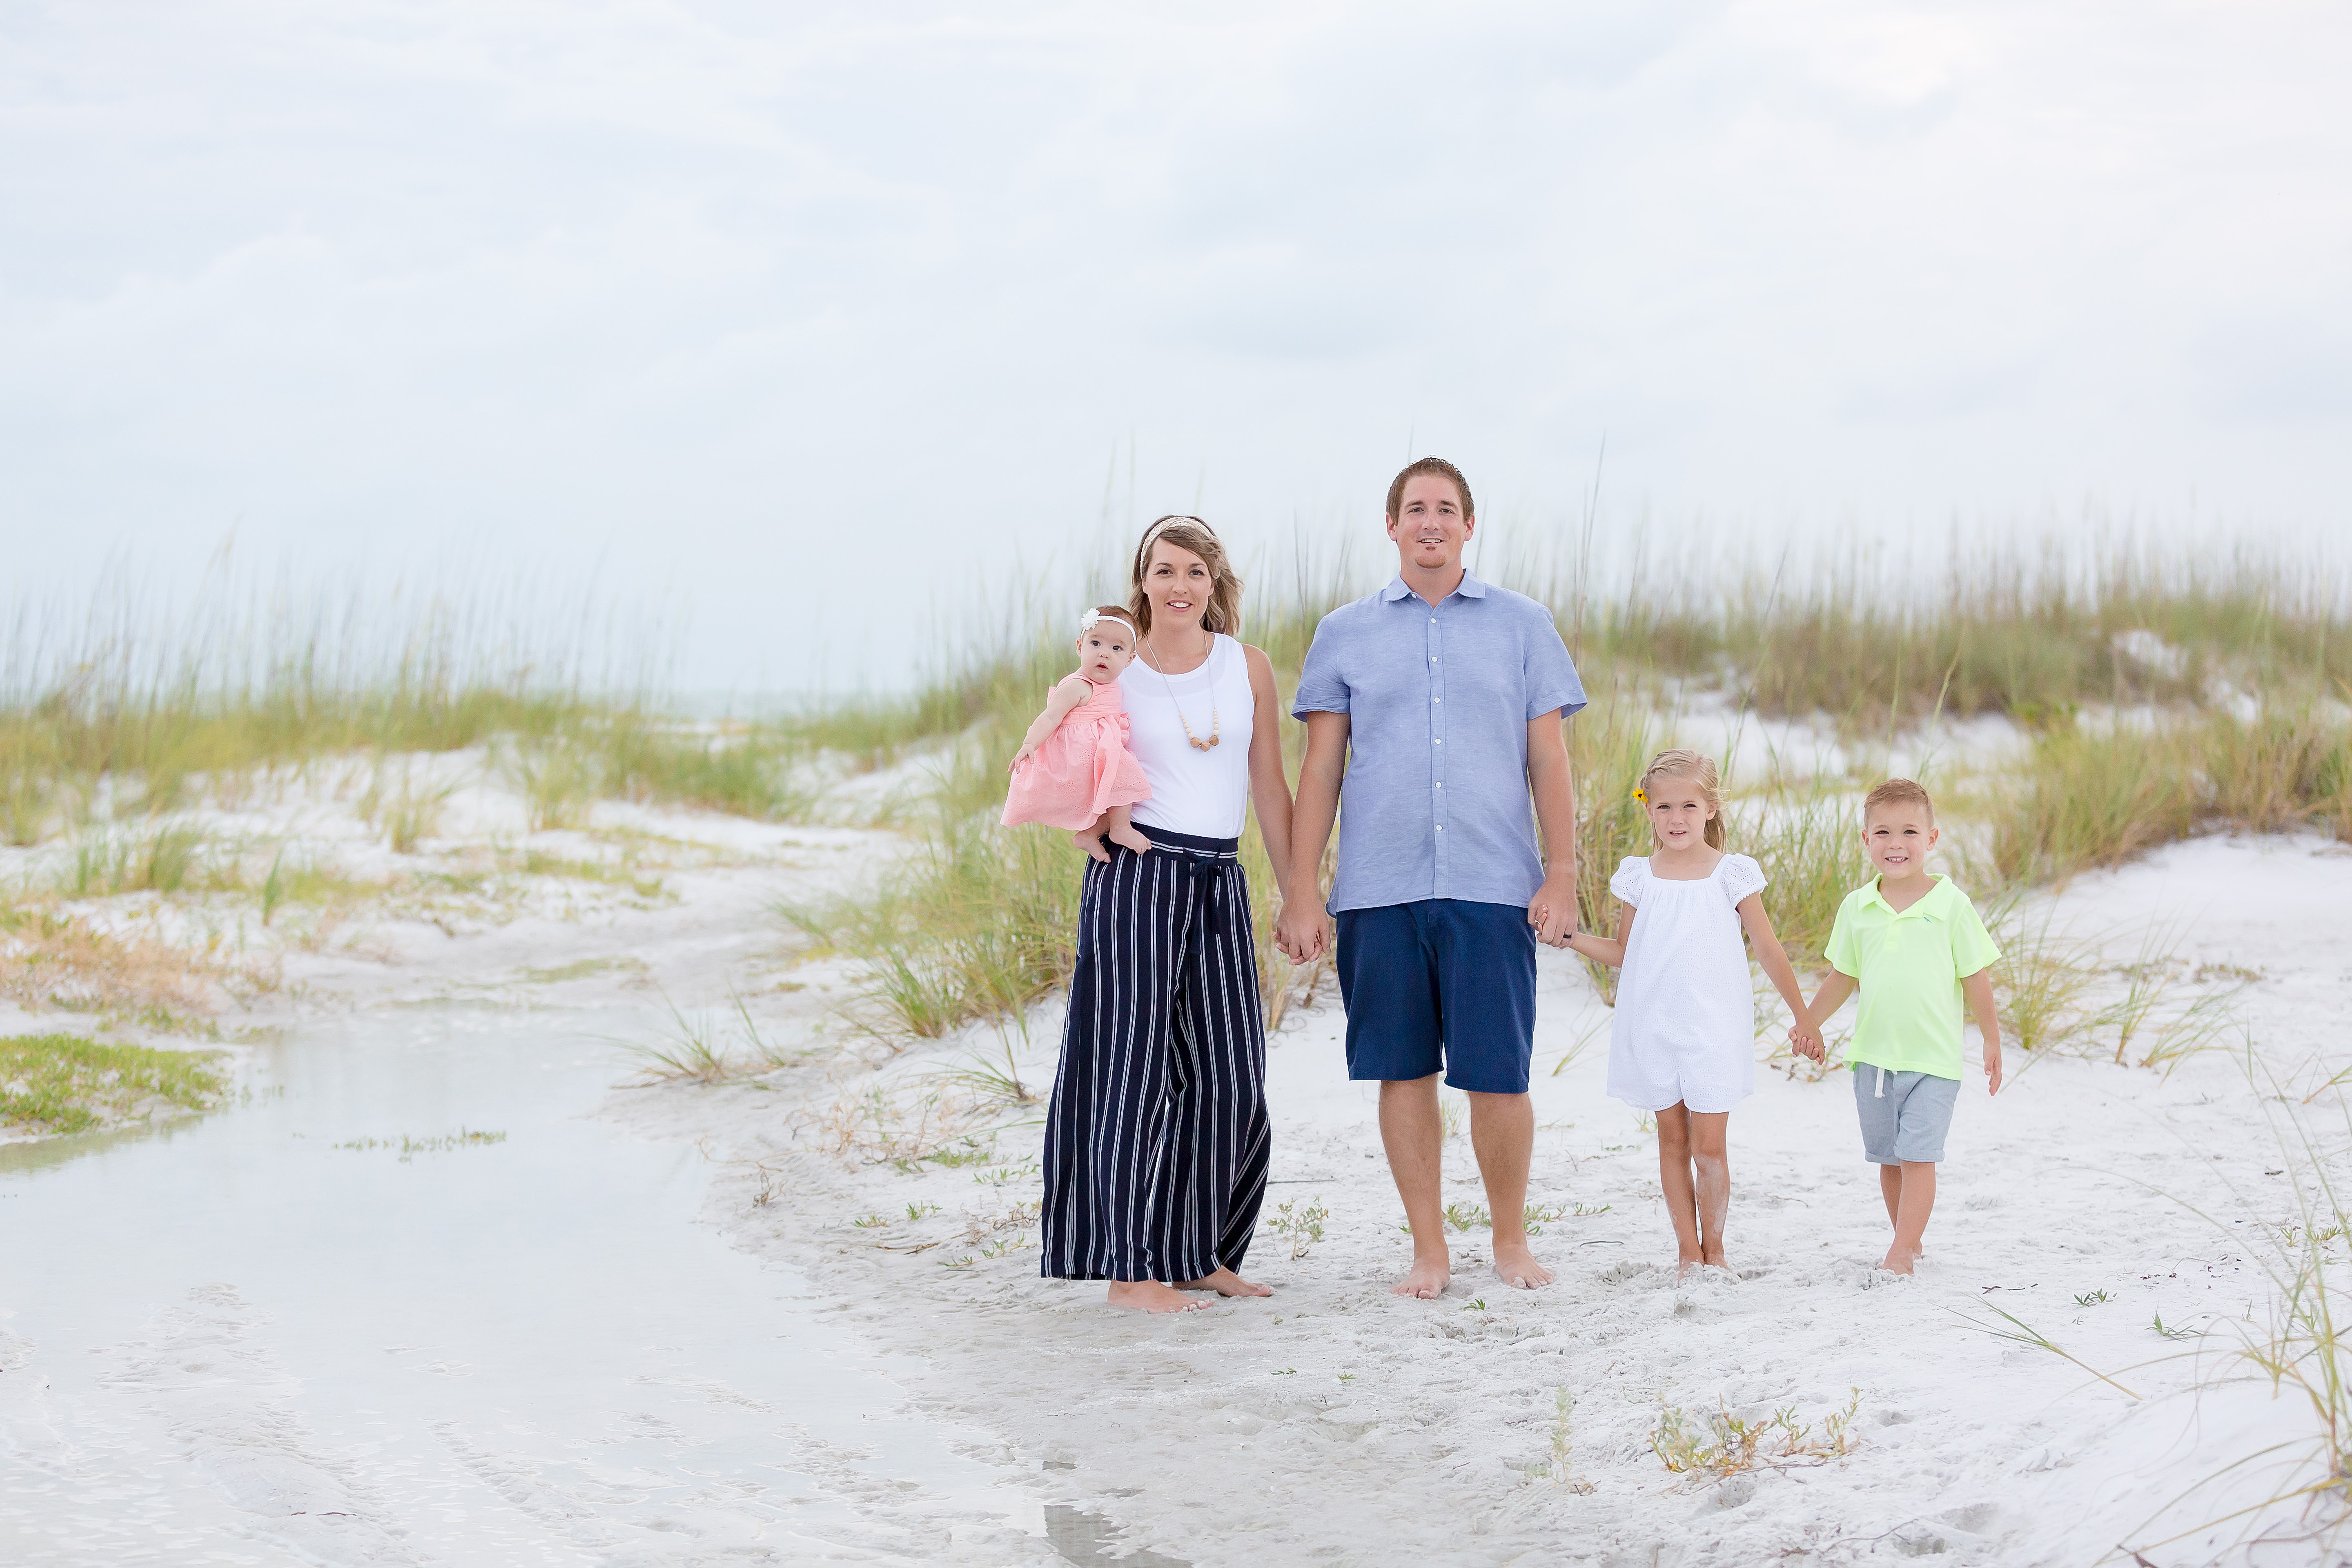 Justin-Yoder-Family-2019-01